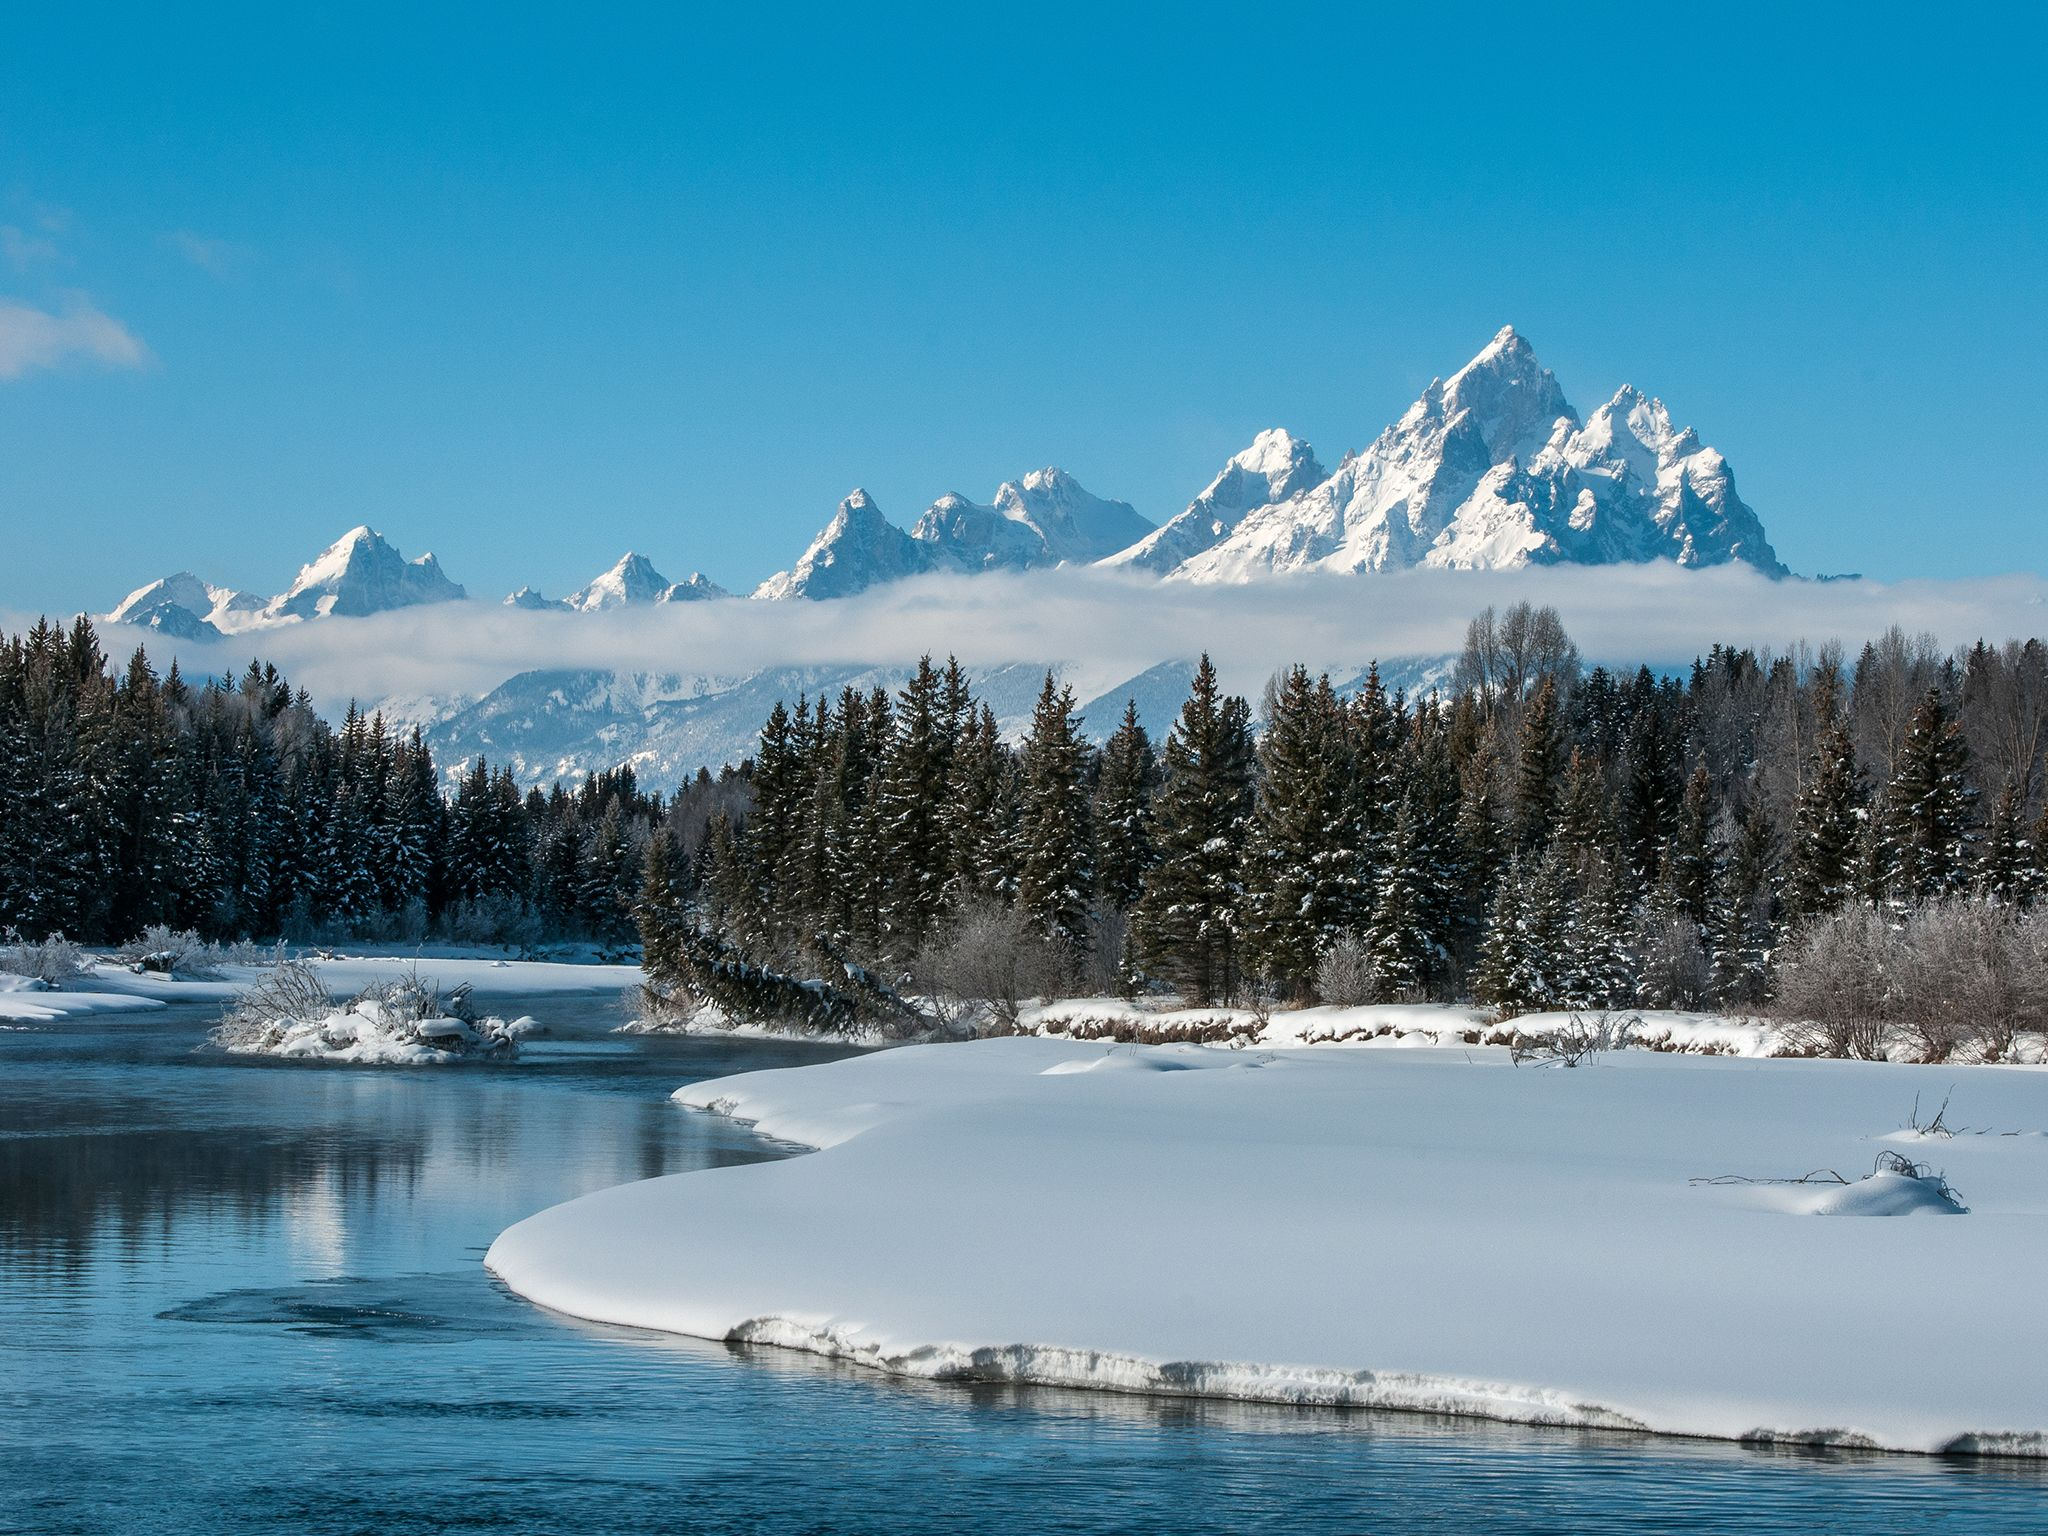 Grand Teton National Park, Wyo.:The Snake River meanders in front of the Teton Mountains mid wint... [Photo of the day - Abril 2015]